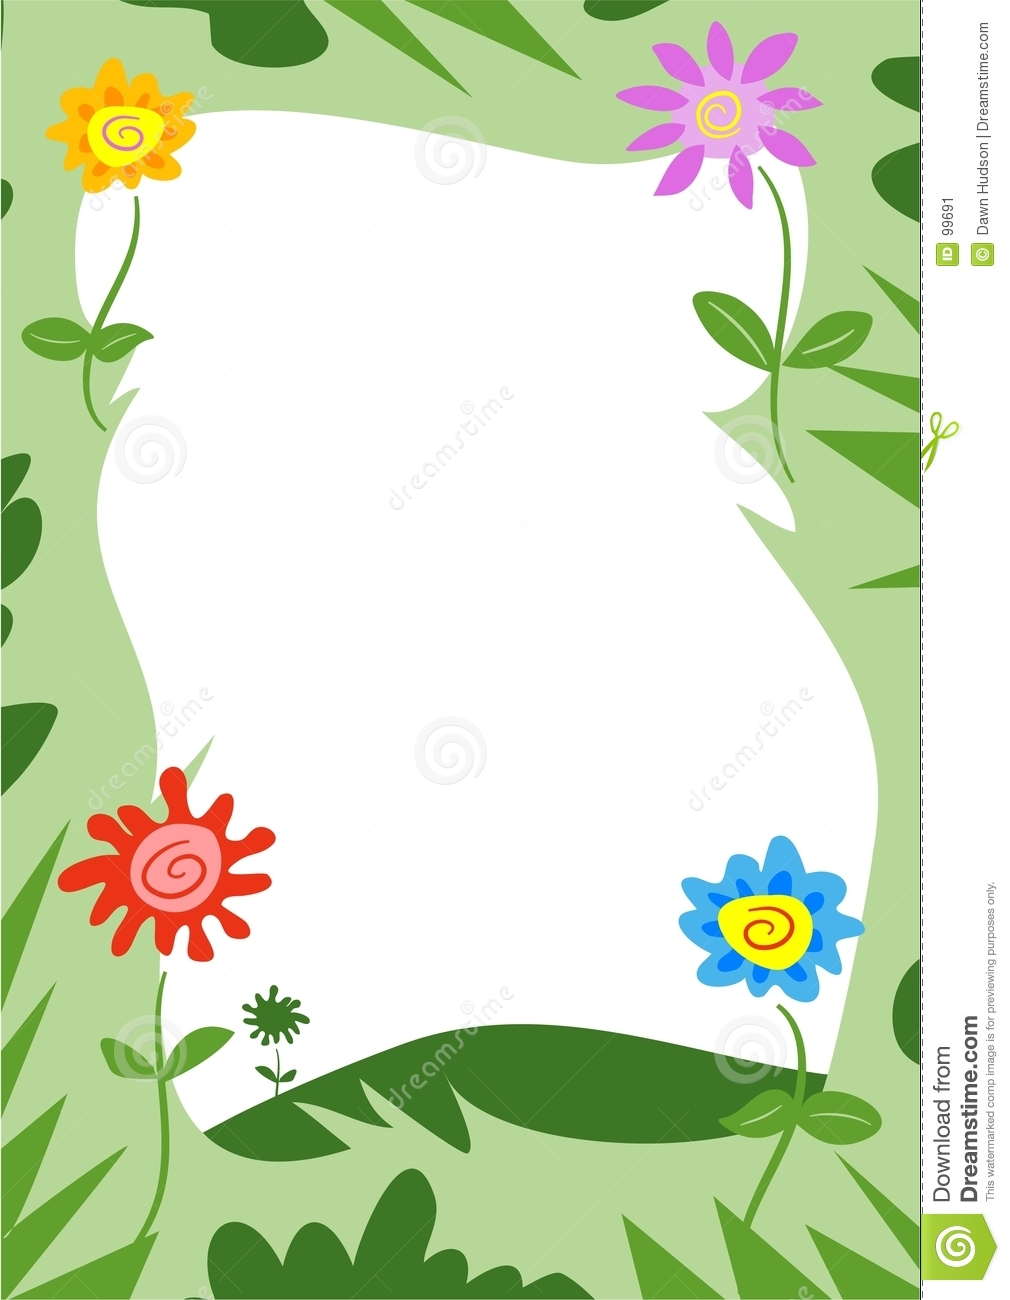 More similar stock images of ` Funky Flowers Frame `